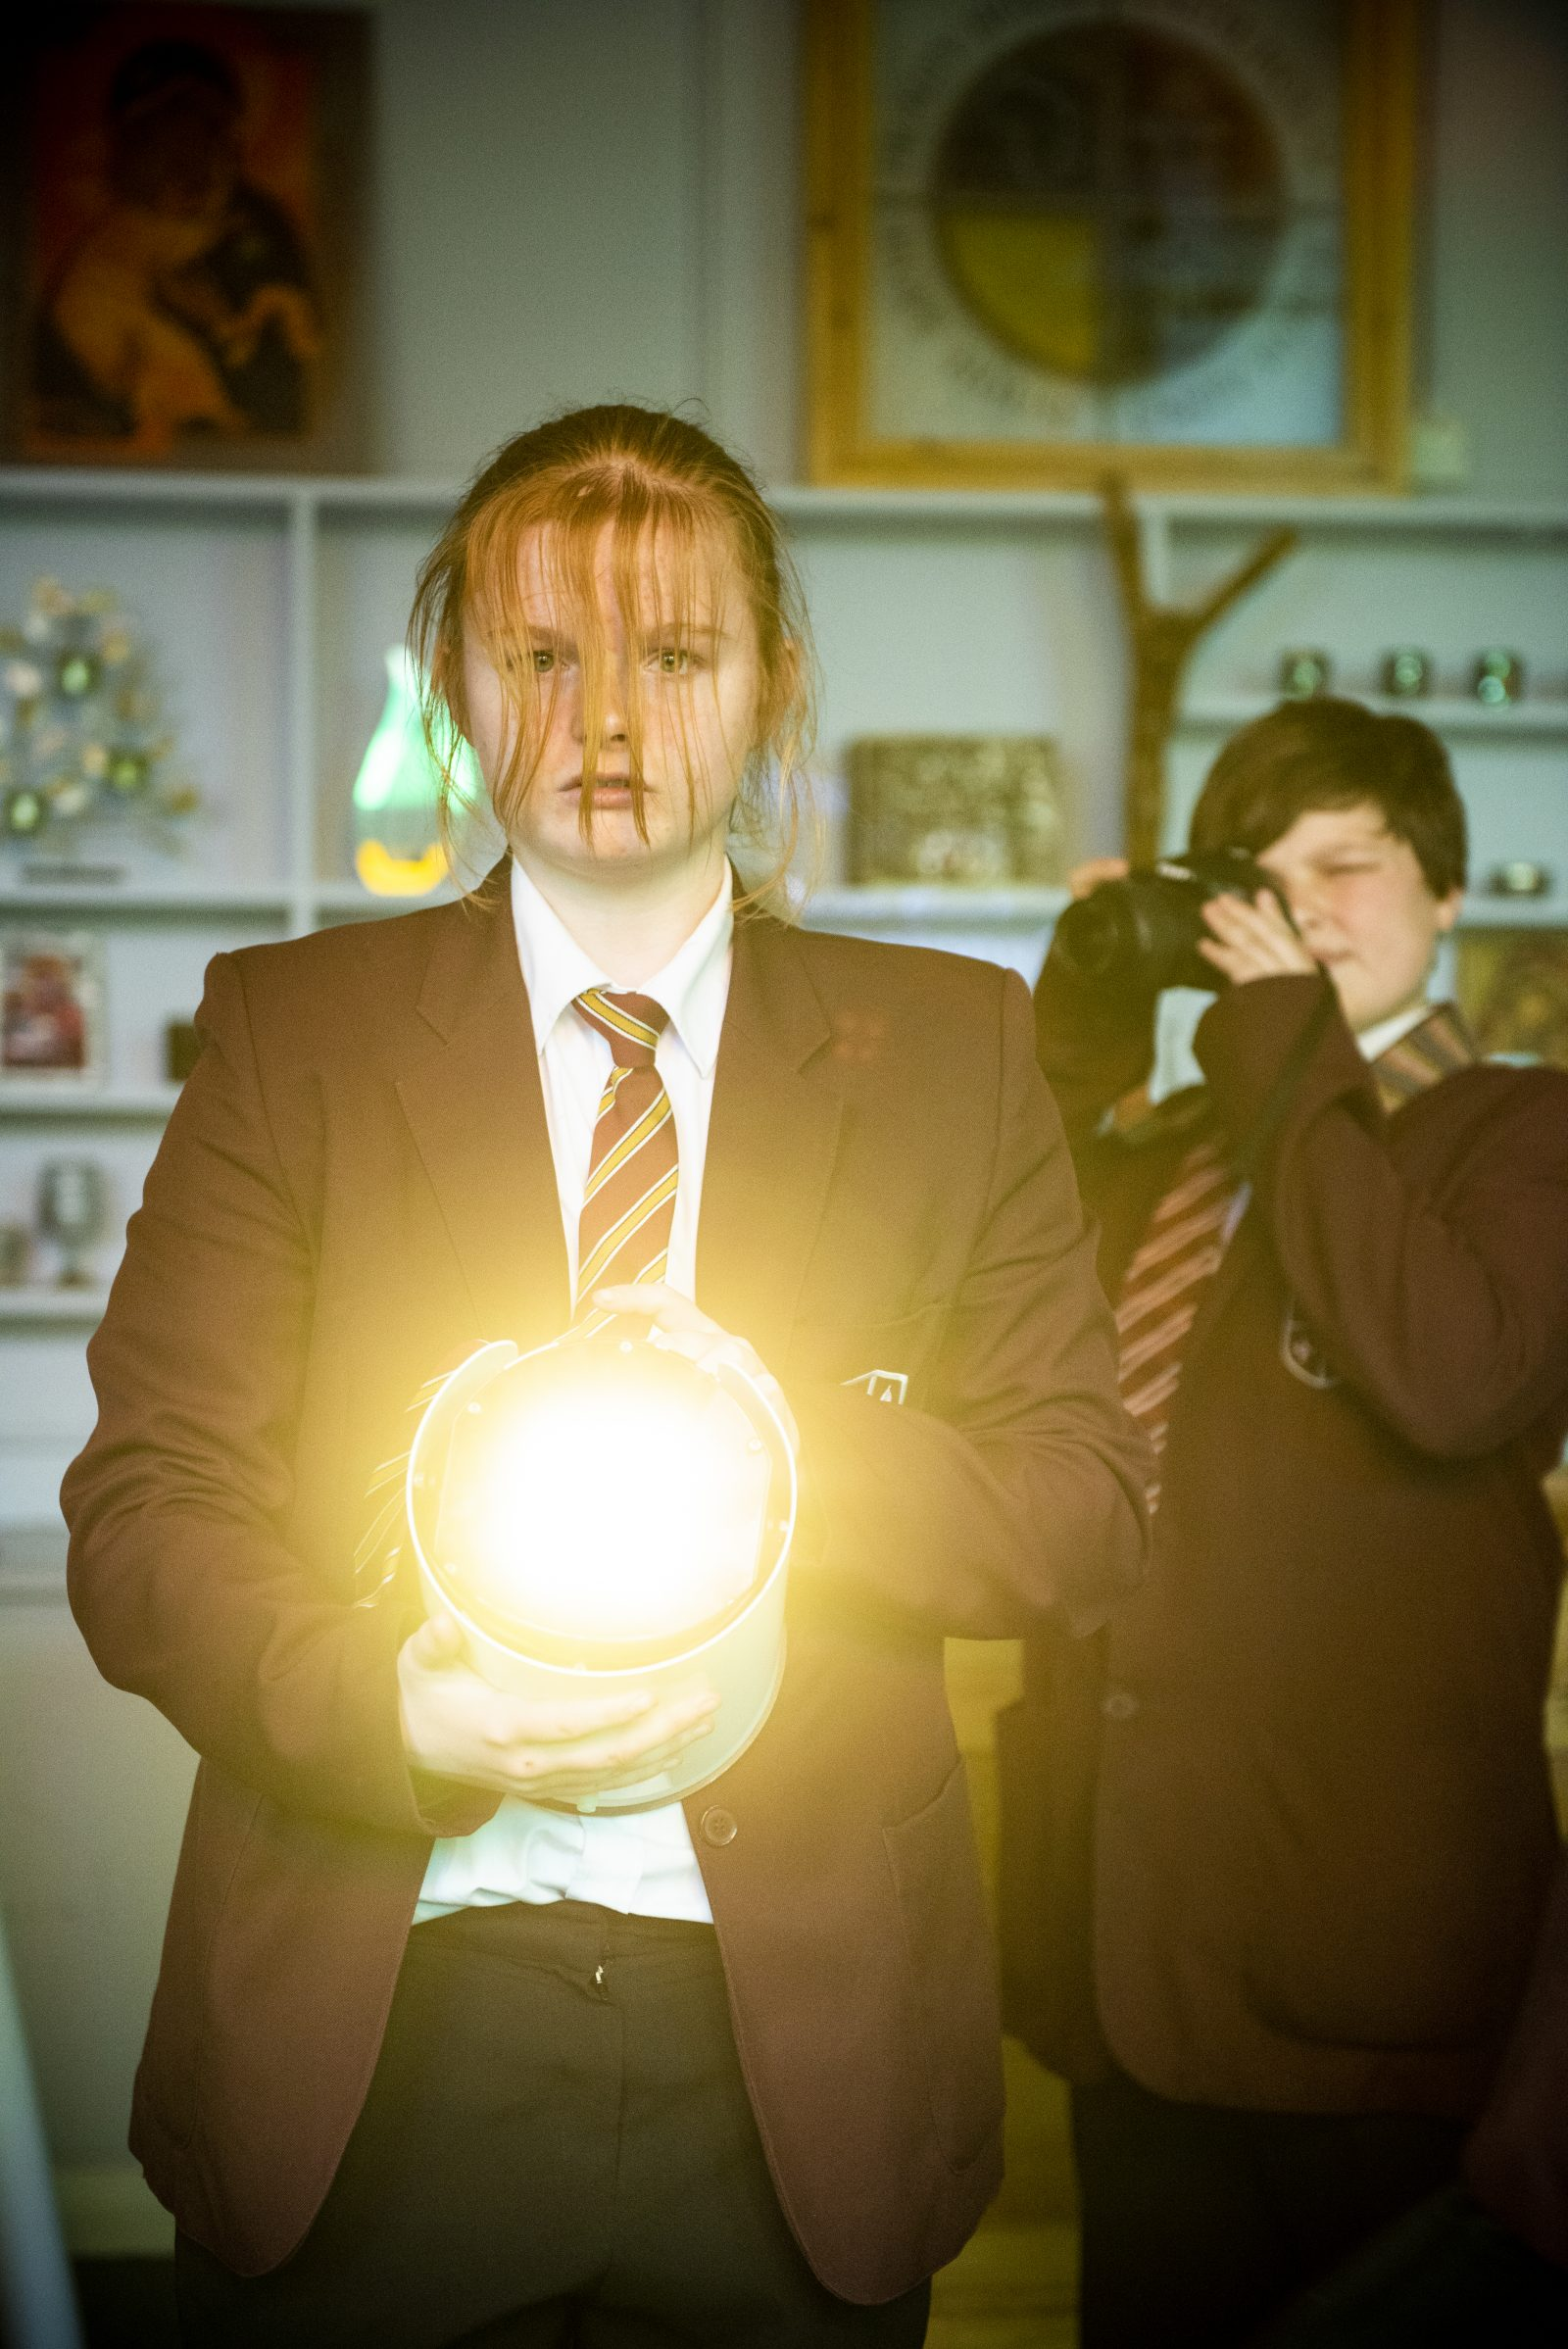 A young person in a school uniform is facing the camera, holding a large spotlight and shining towards us. They have long red hair which falls over their eyes and serious look on their face. Behind them another young person in a school uniform is holding up a camera and taking a picture.